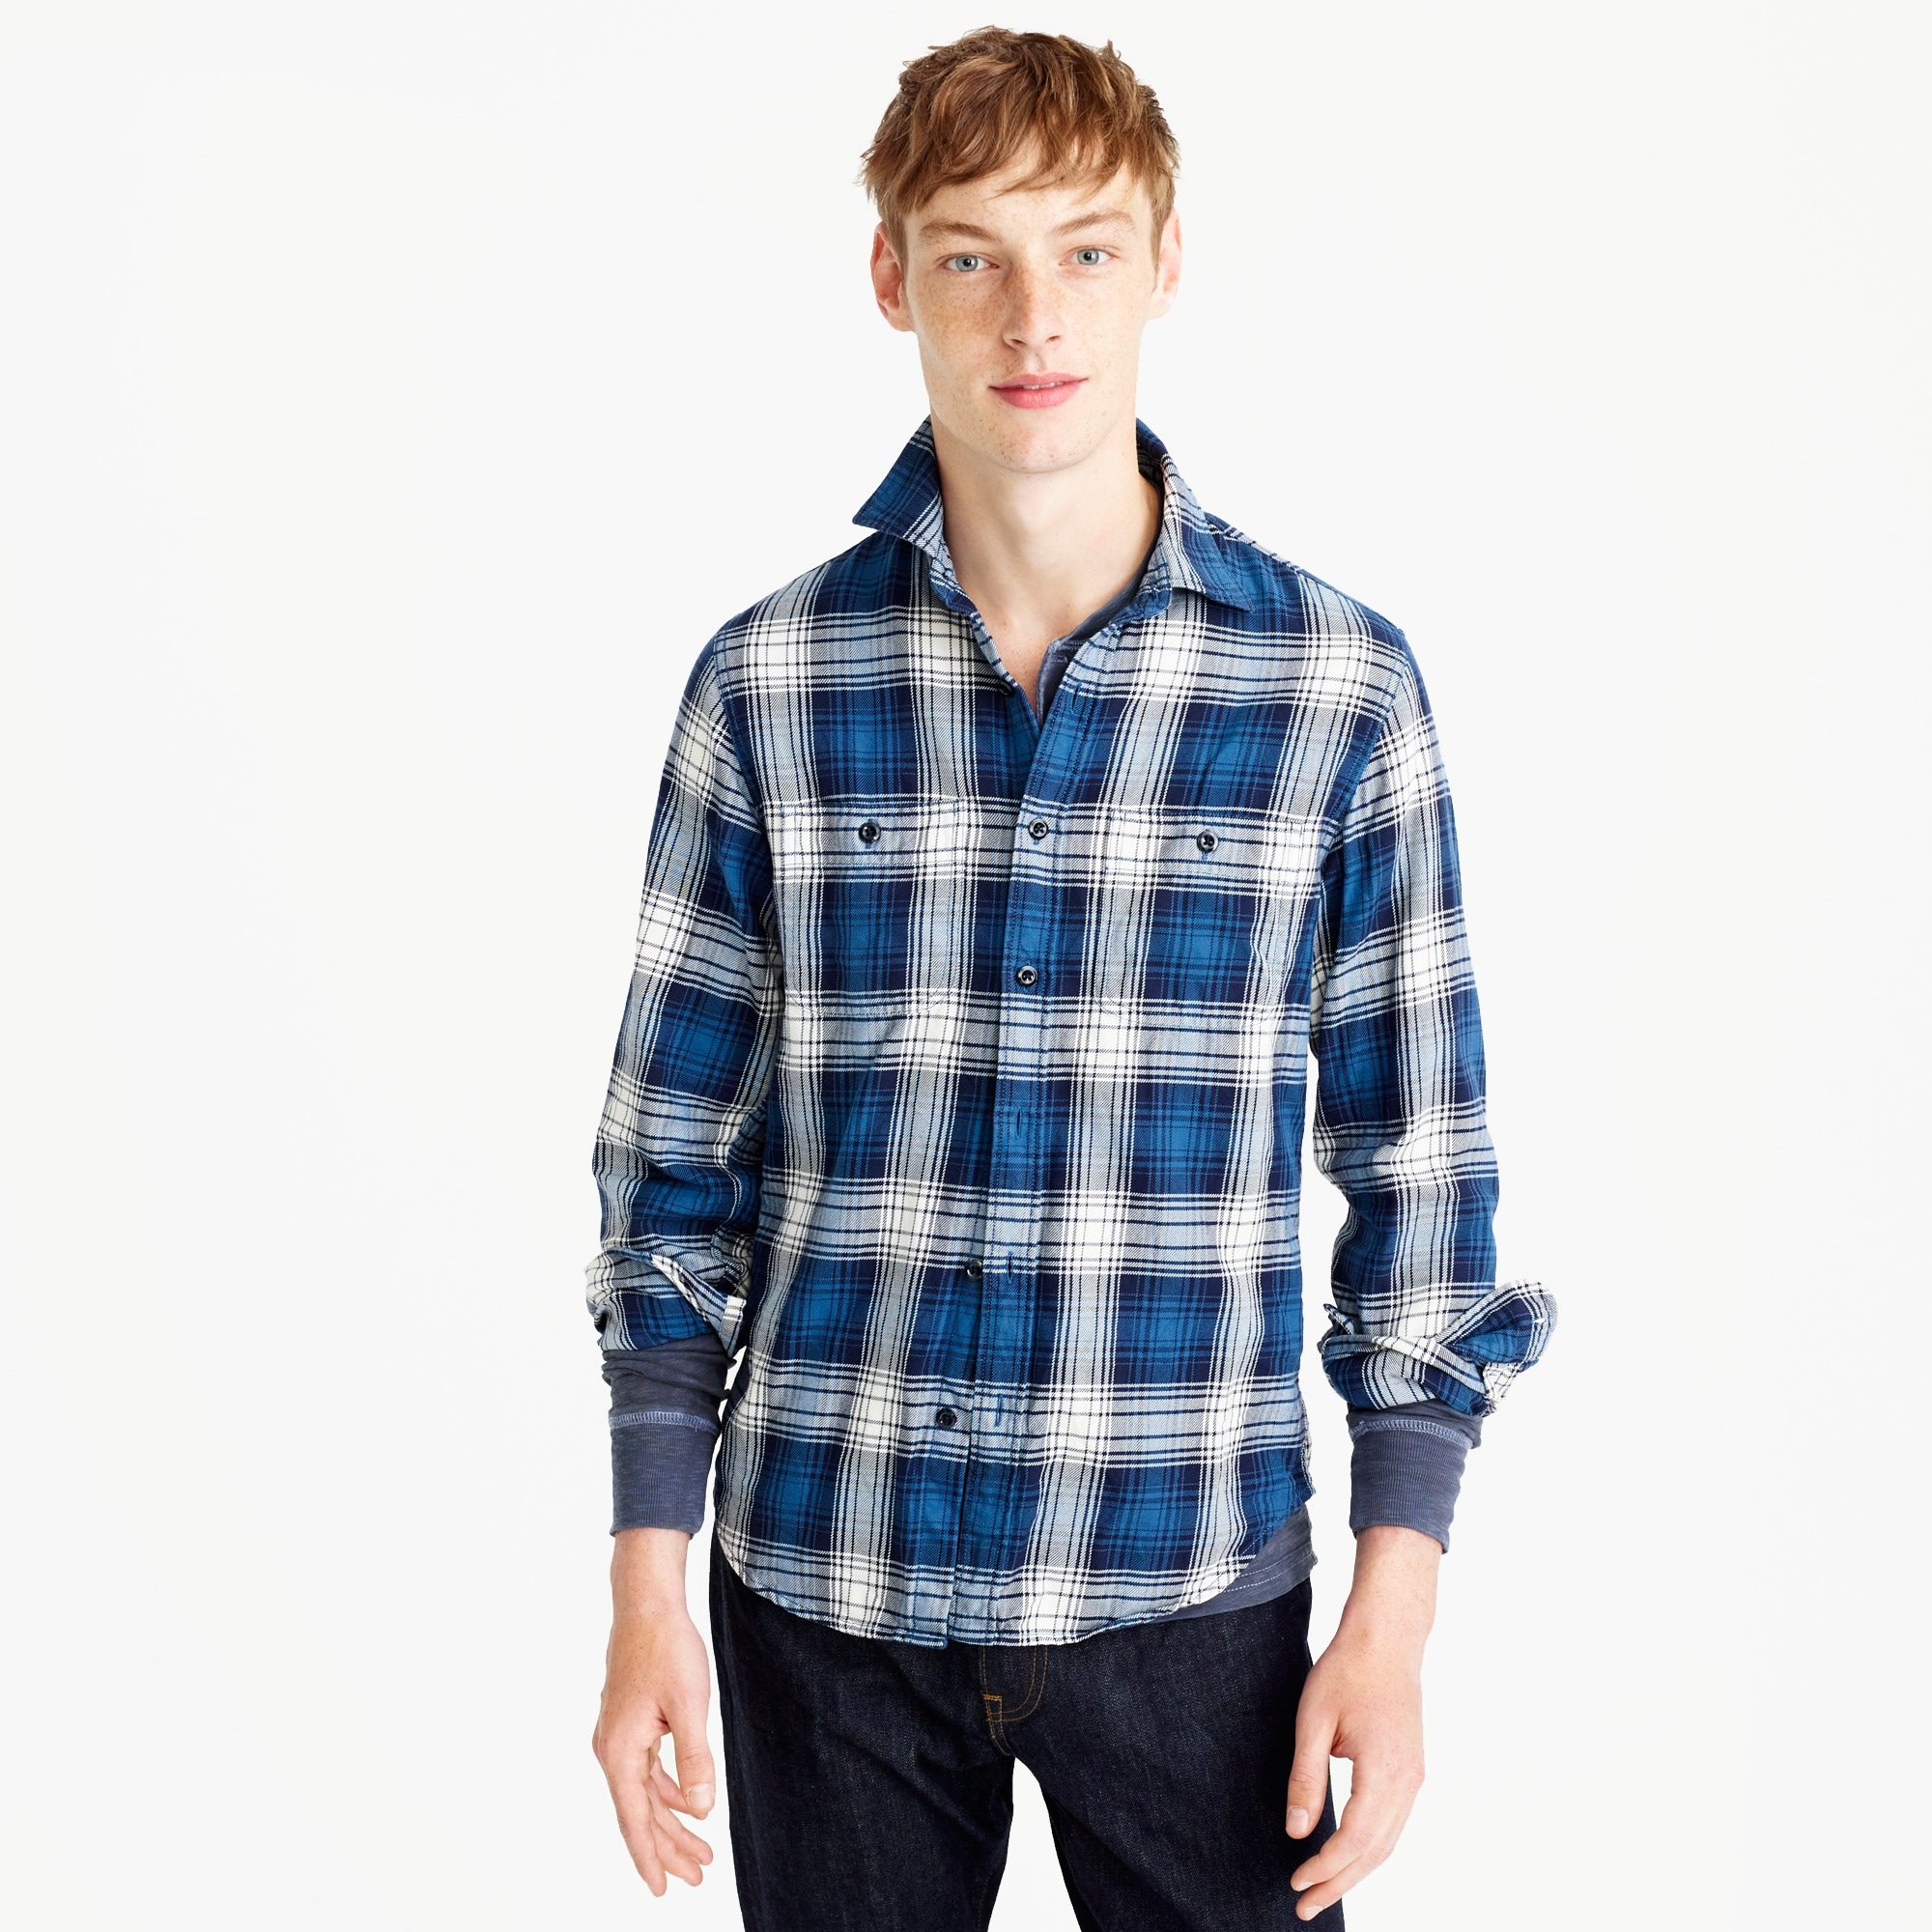 slim midweight flannel shirt in blue-and-white plaid : men shirts